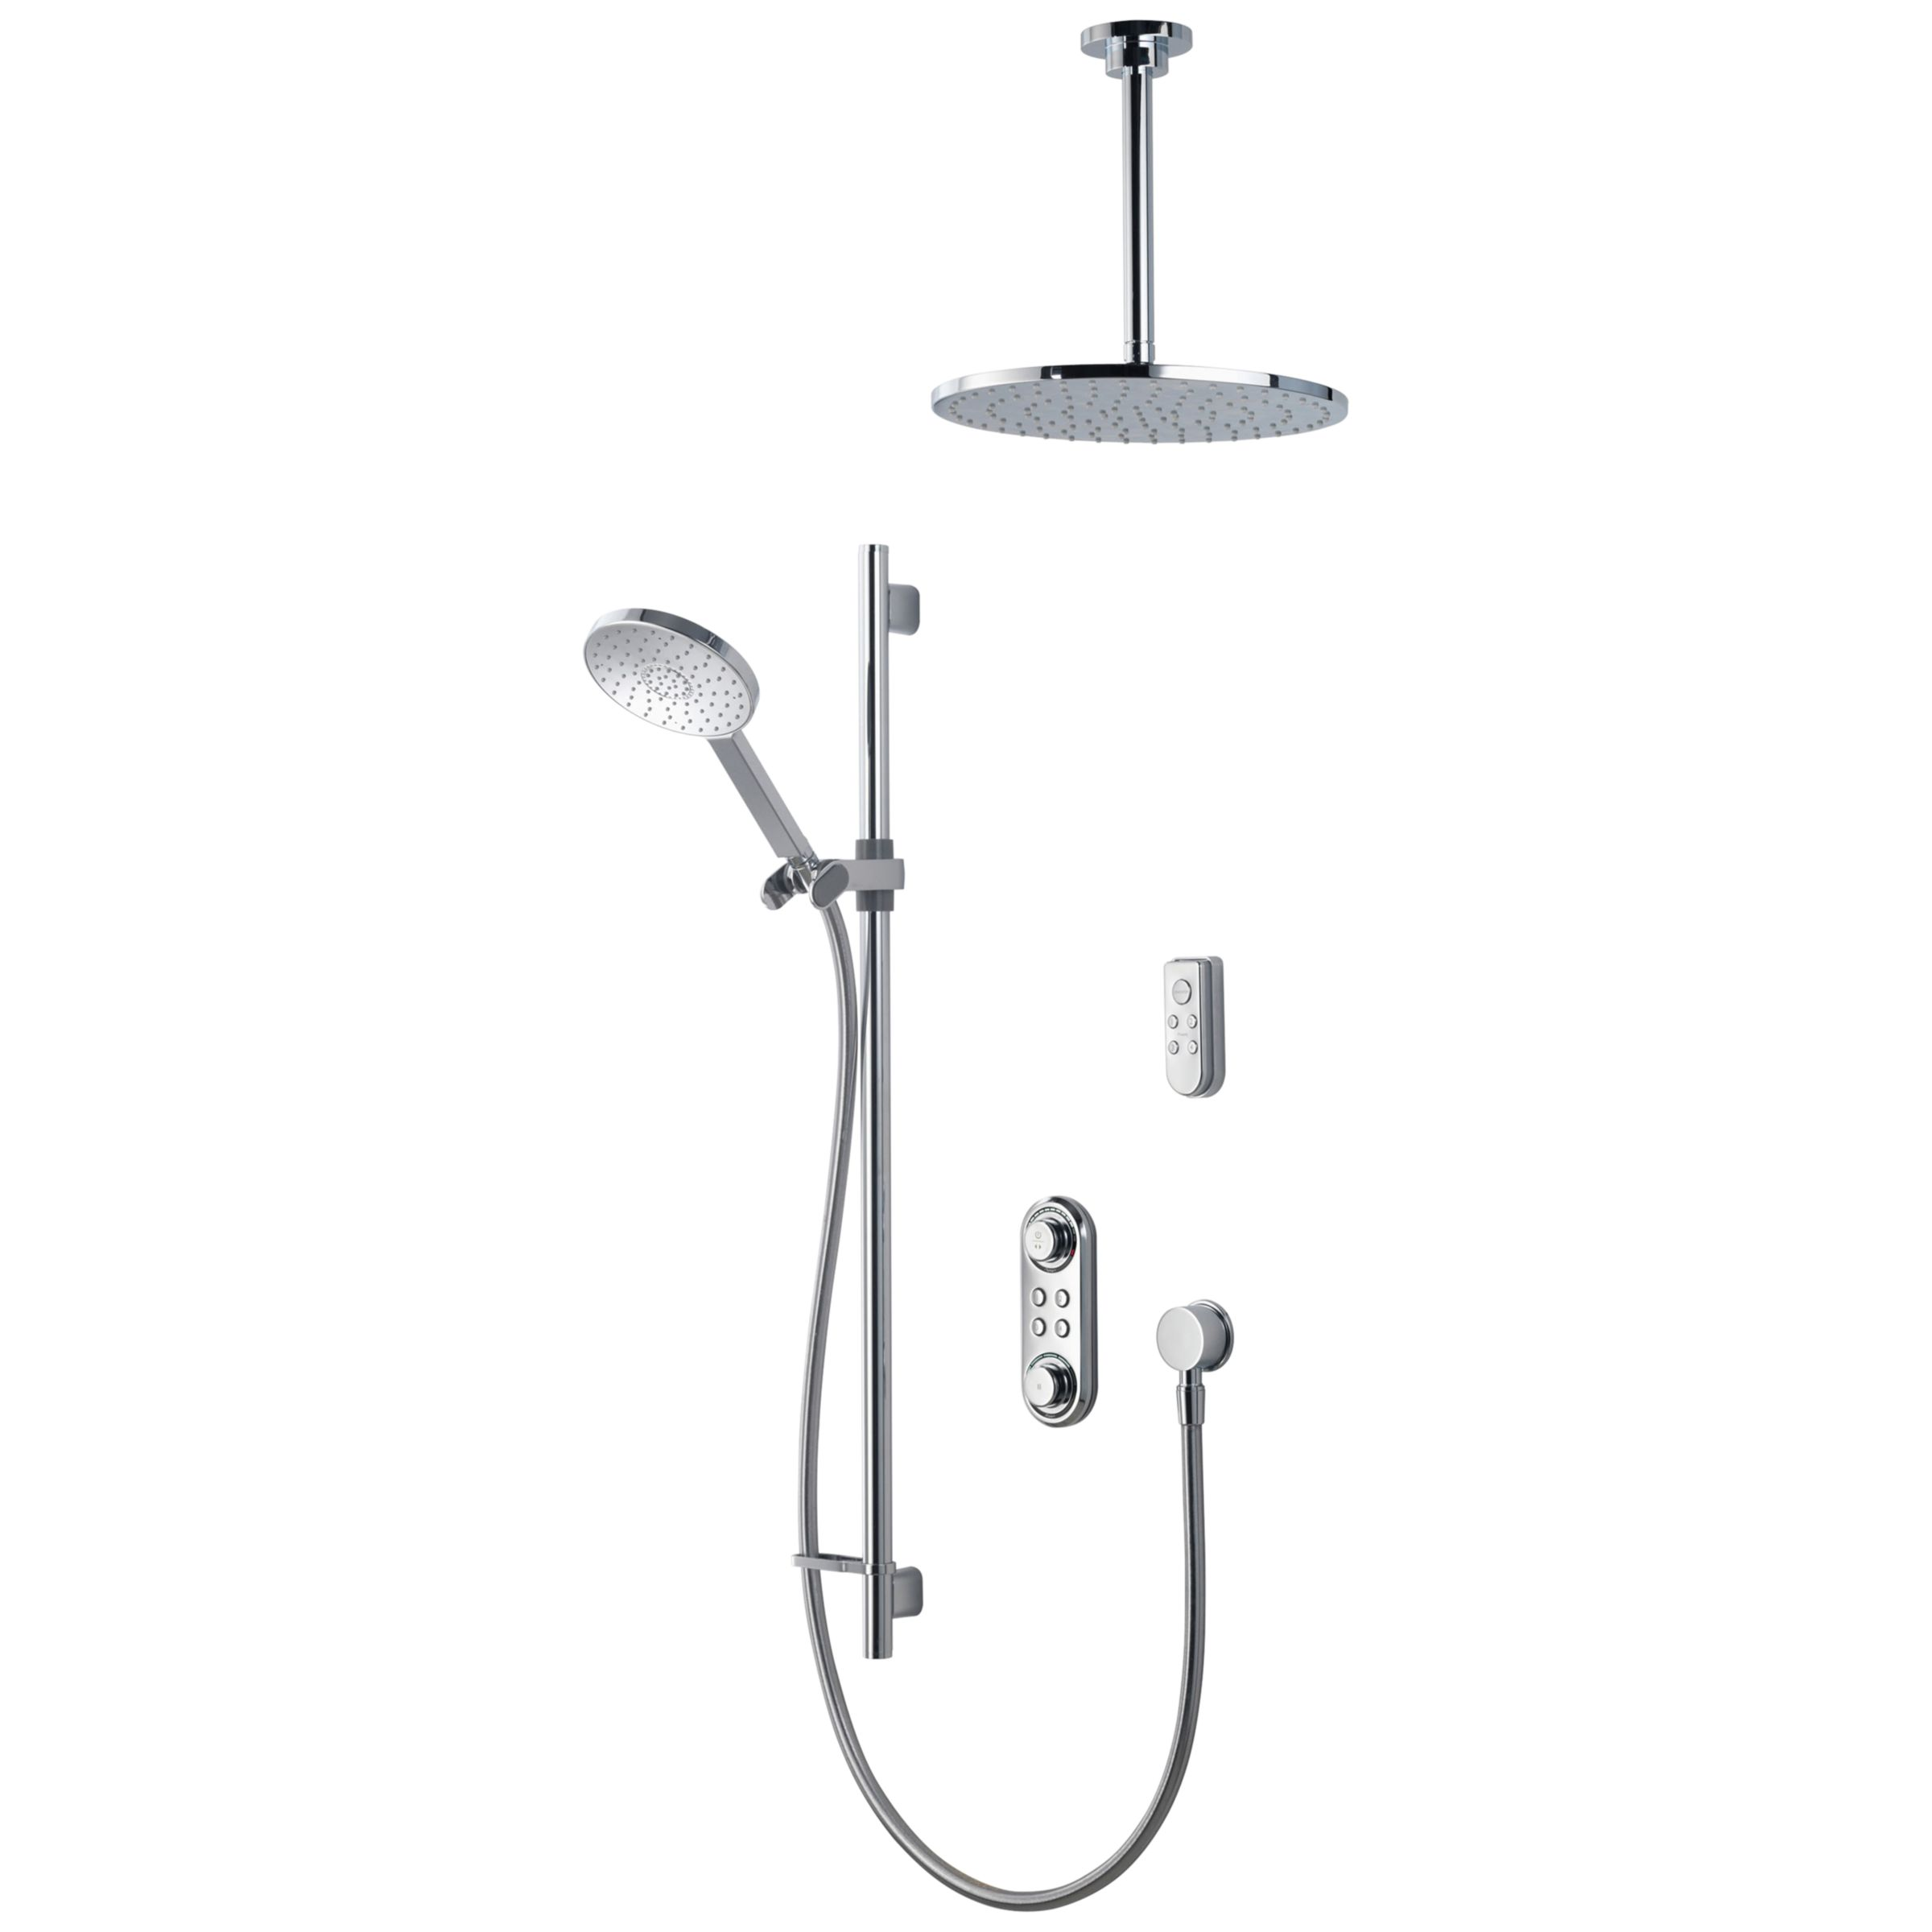 Aqualisa Ilux Xt Digital Concealed Gravity Pumped Shower With Adjustable Head Diverter And Ceiling Fixed Head